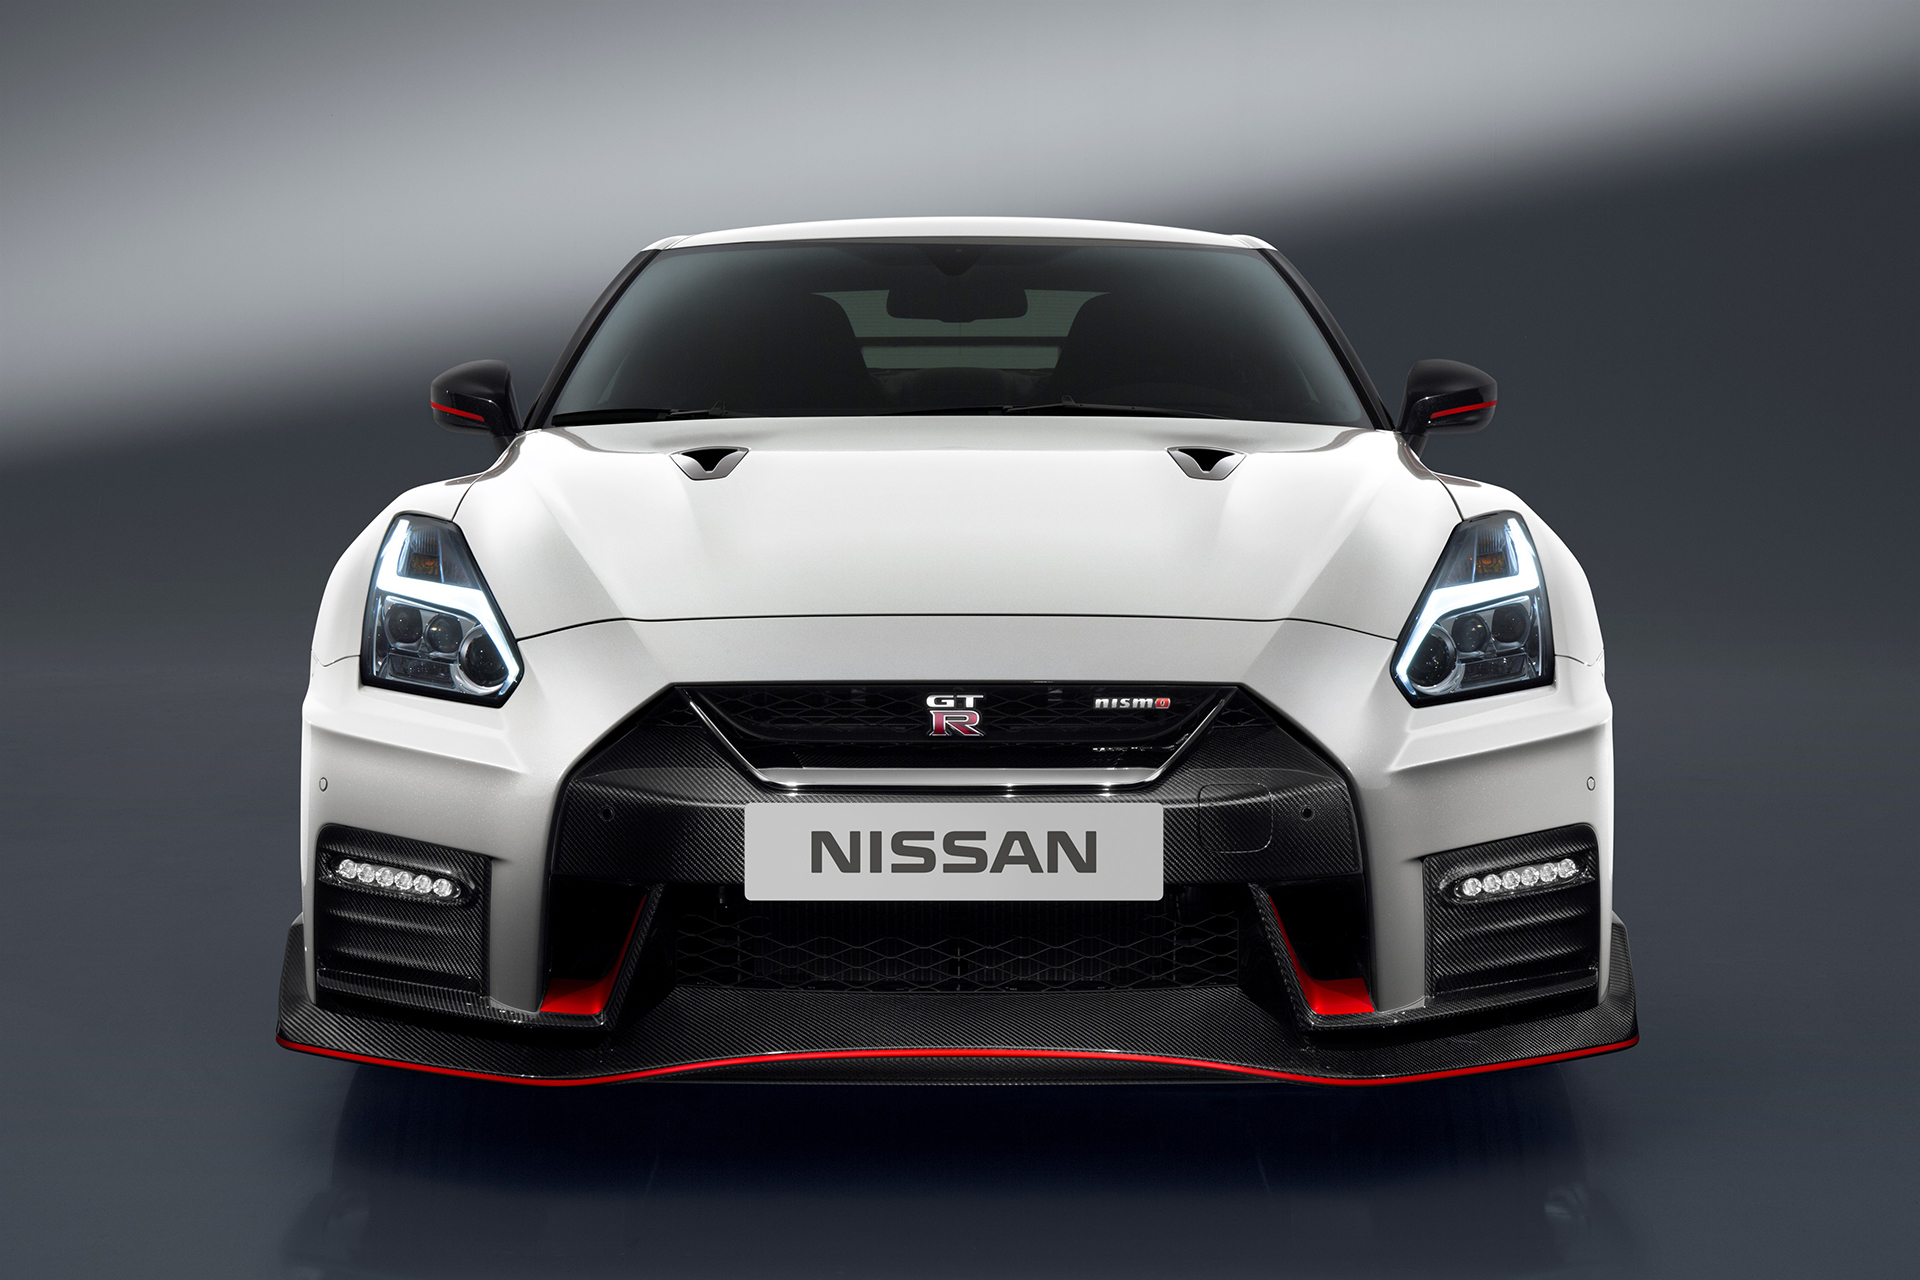 2017 gt r nismo moteur v6 nissan ch ssis motorsport. Black Bedroom Furniture Sets. Home Design Ideas